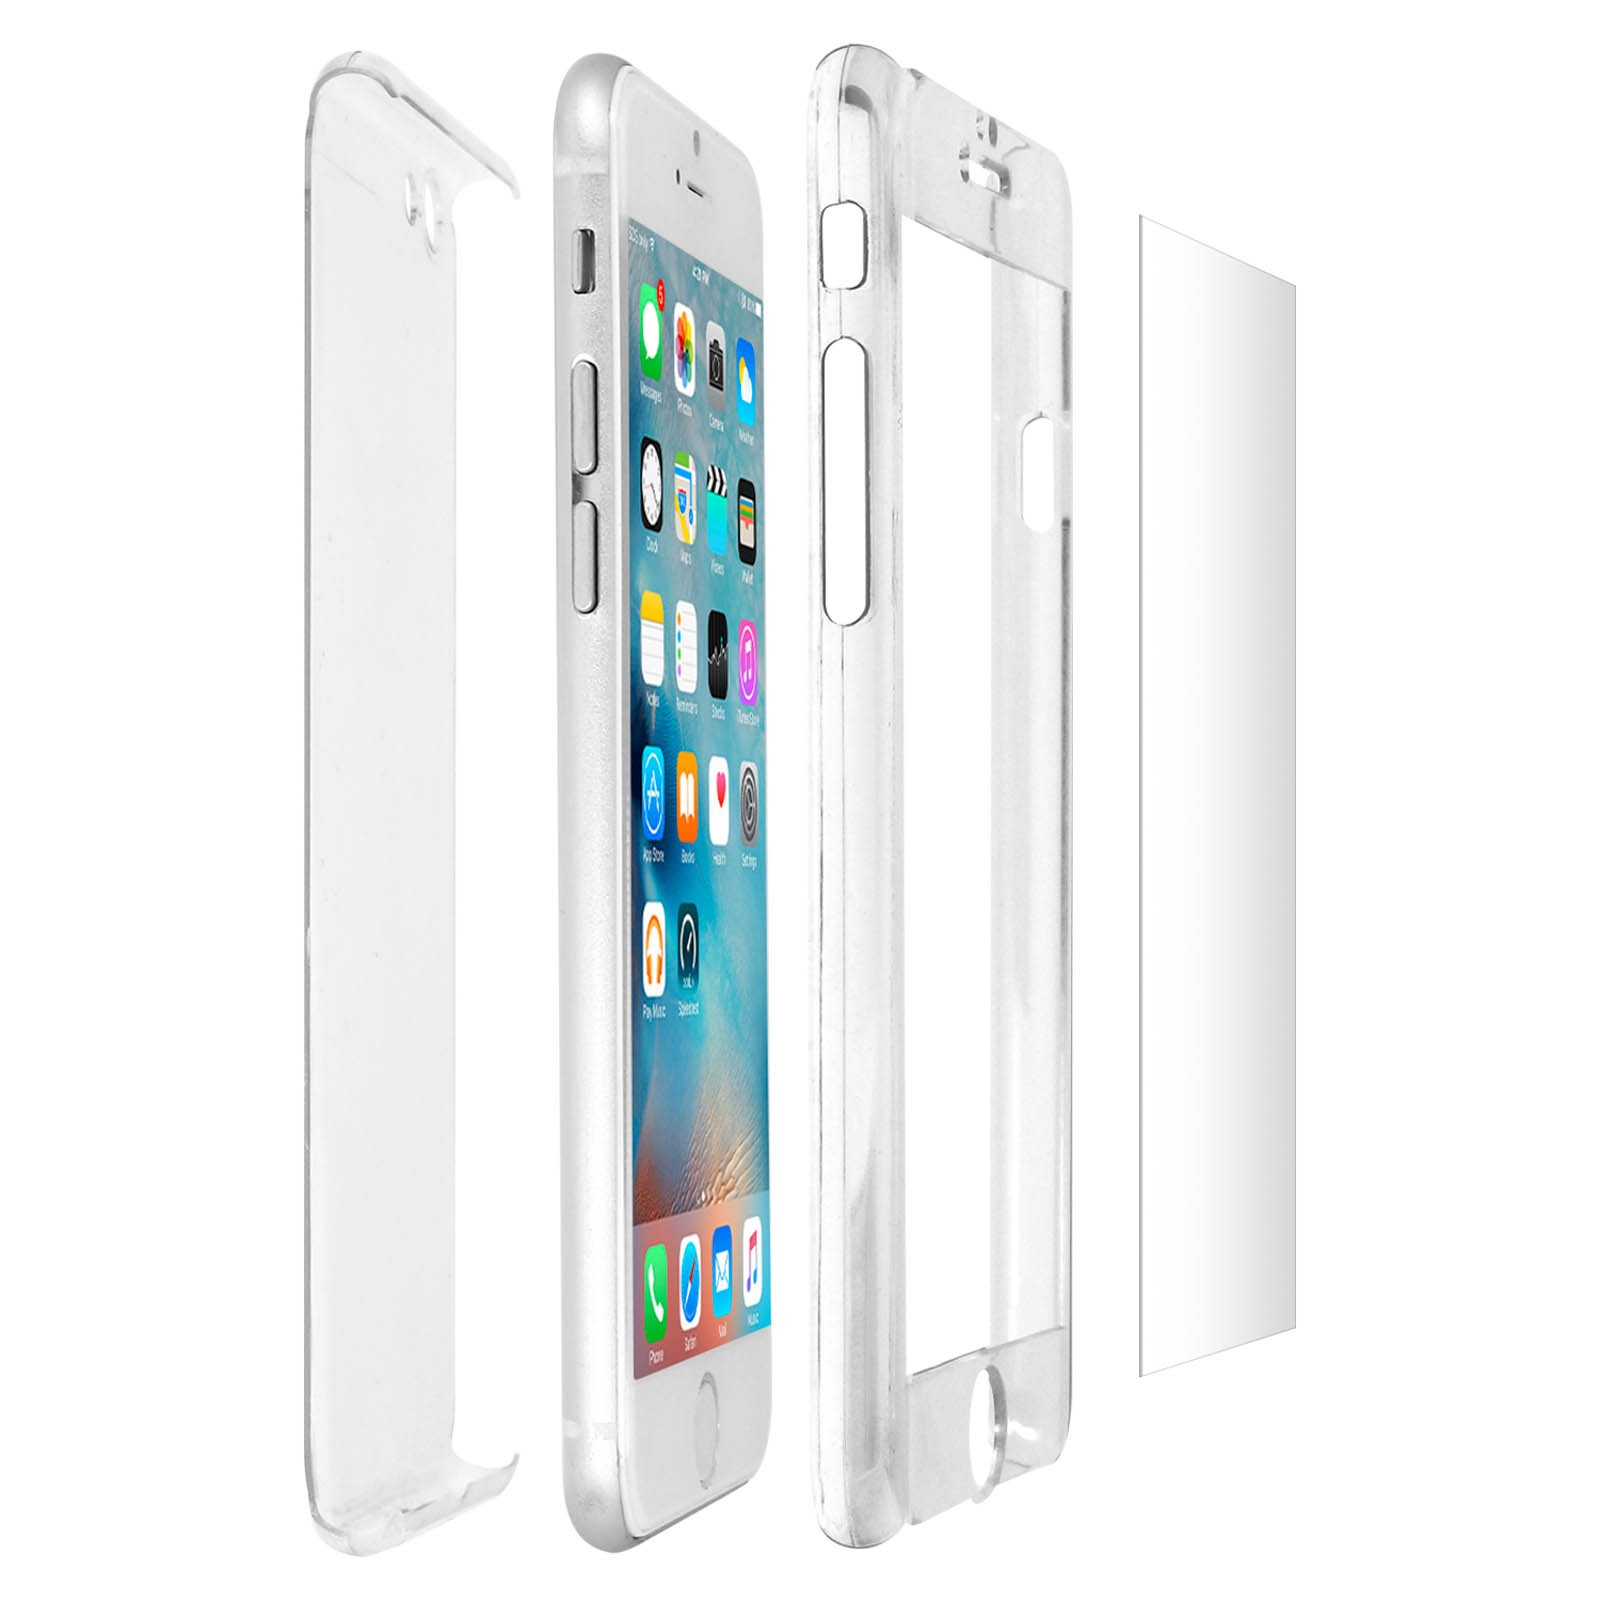 coque iphone 6 plus verre